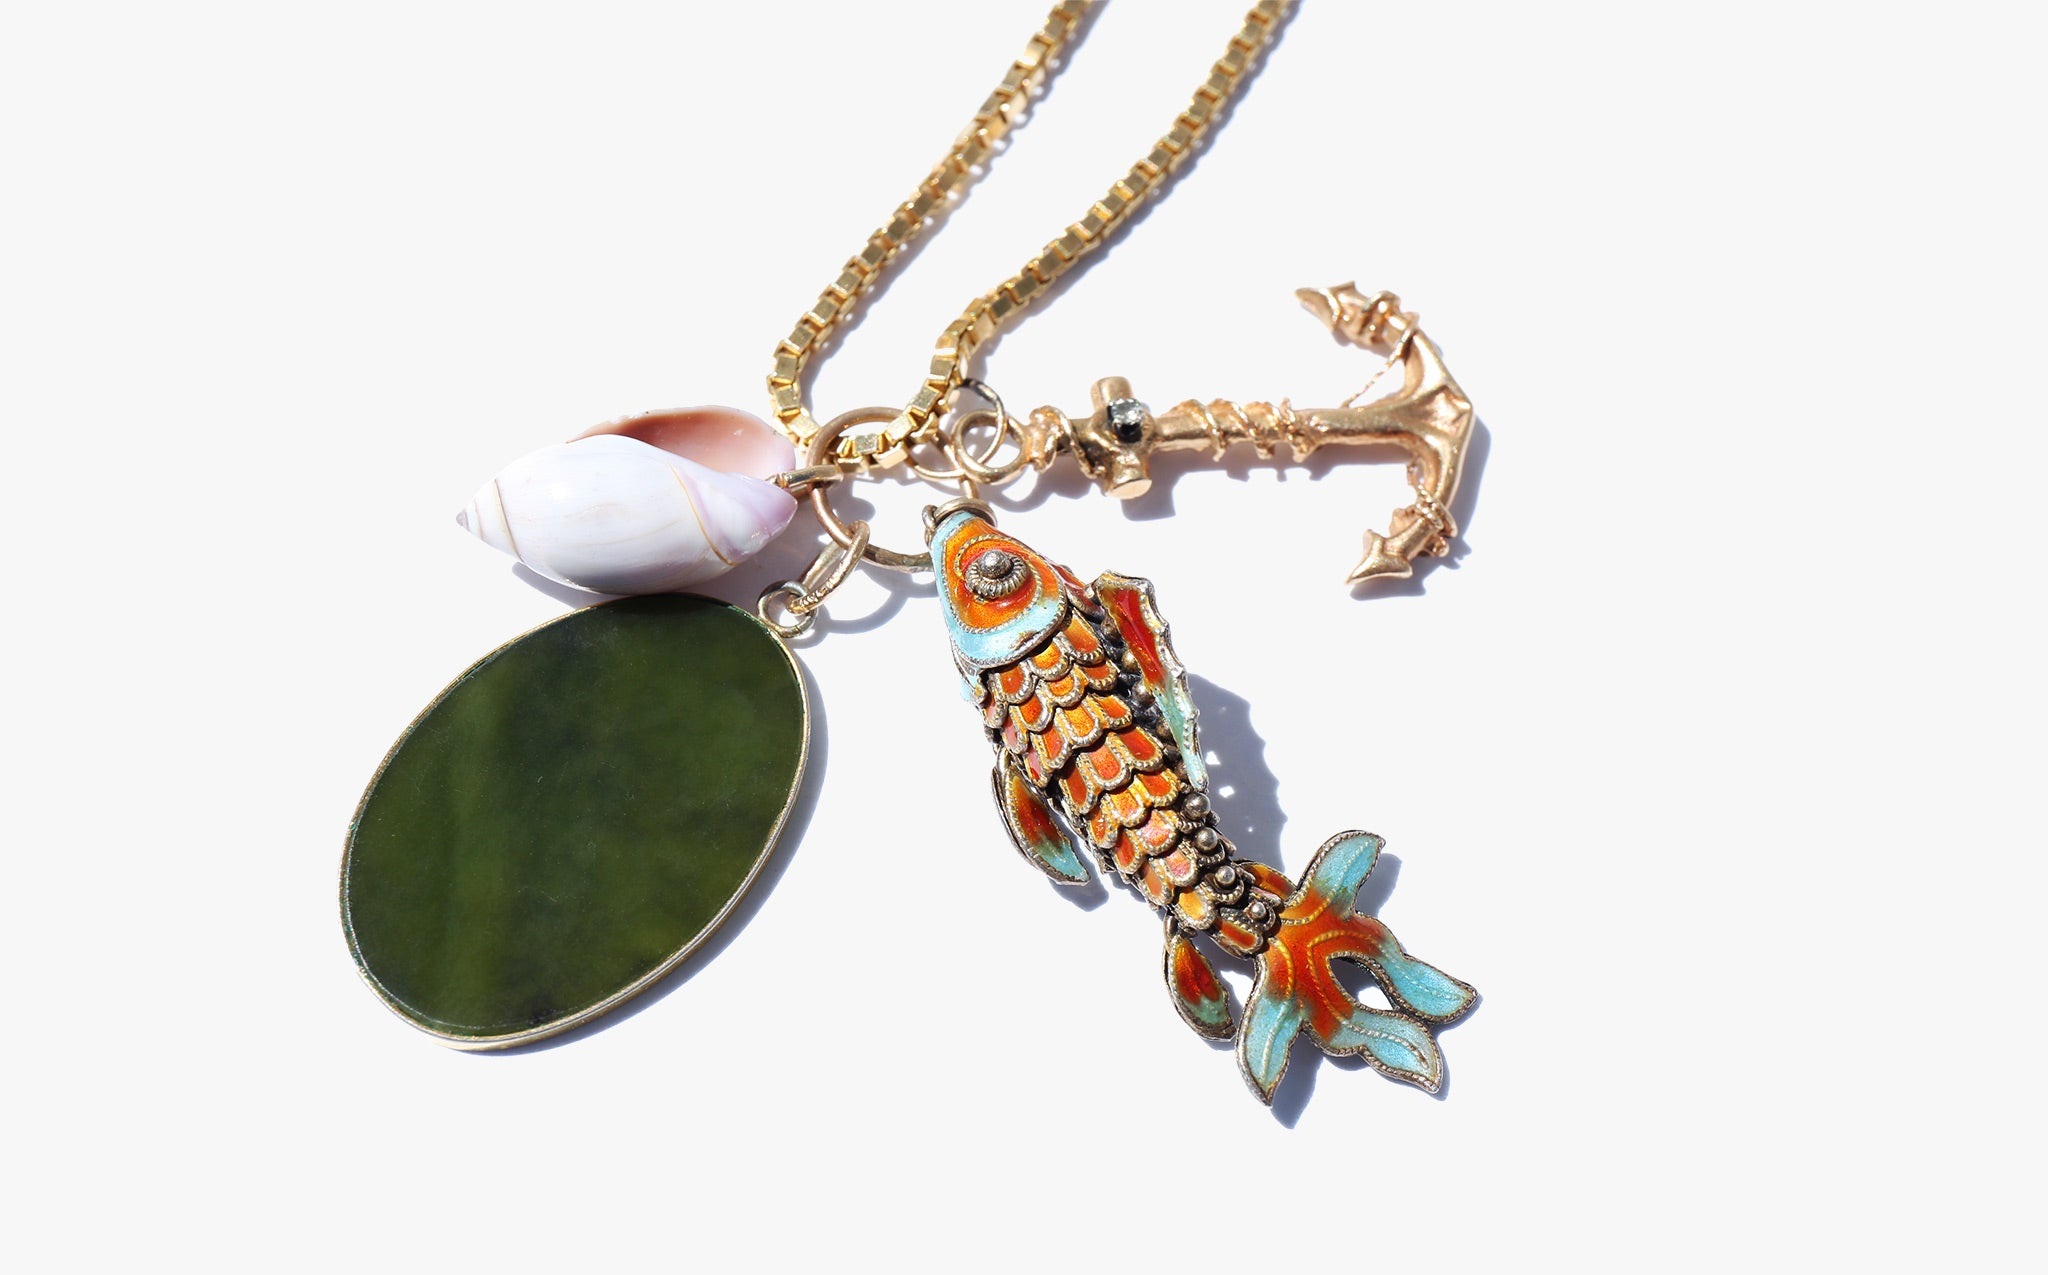 The Charms of the Sea Necklace